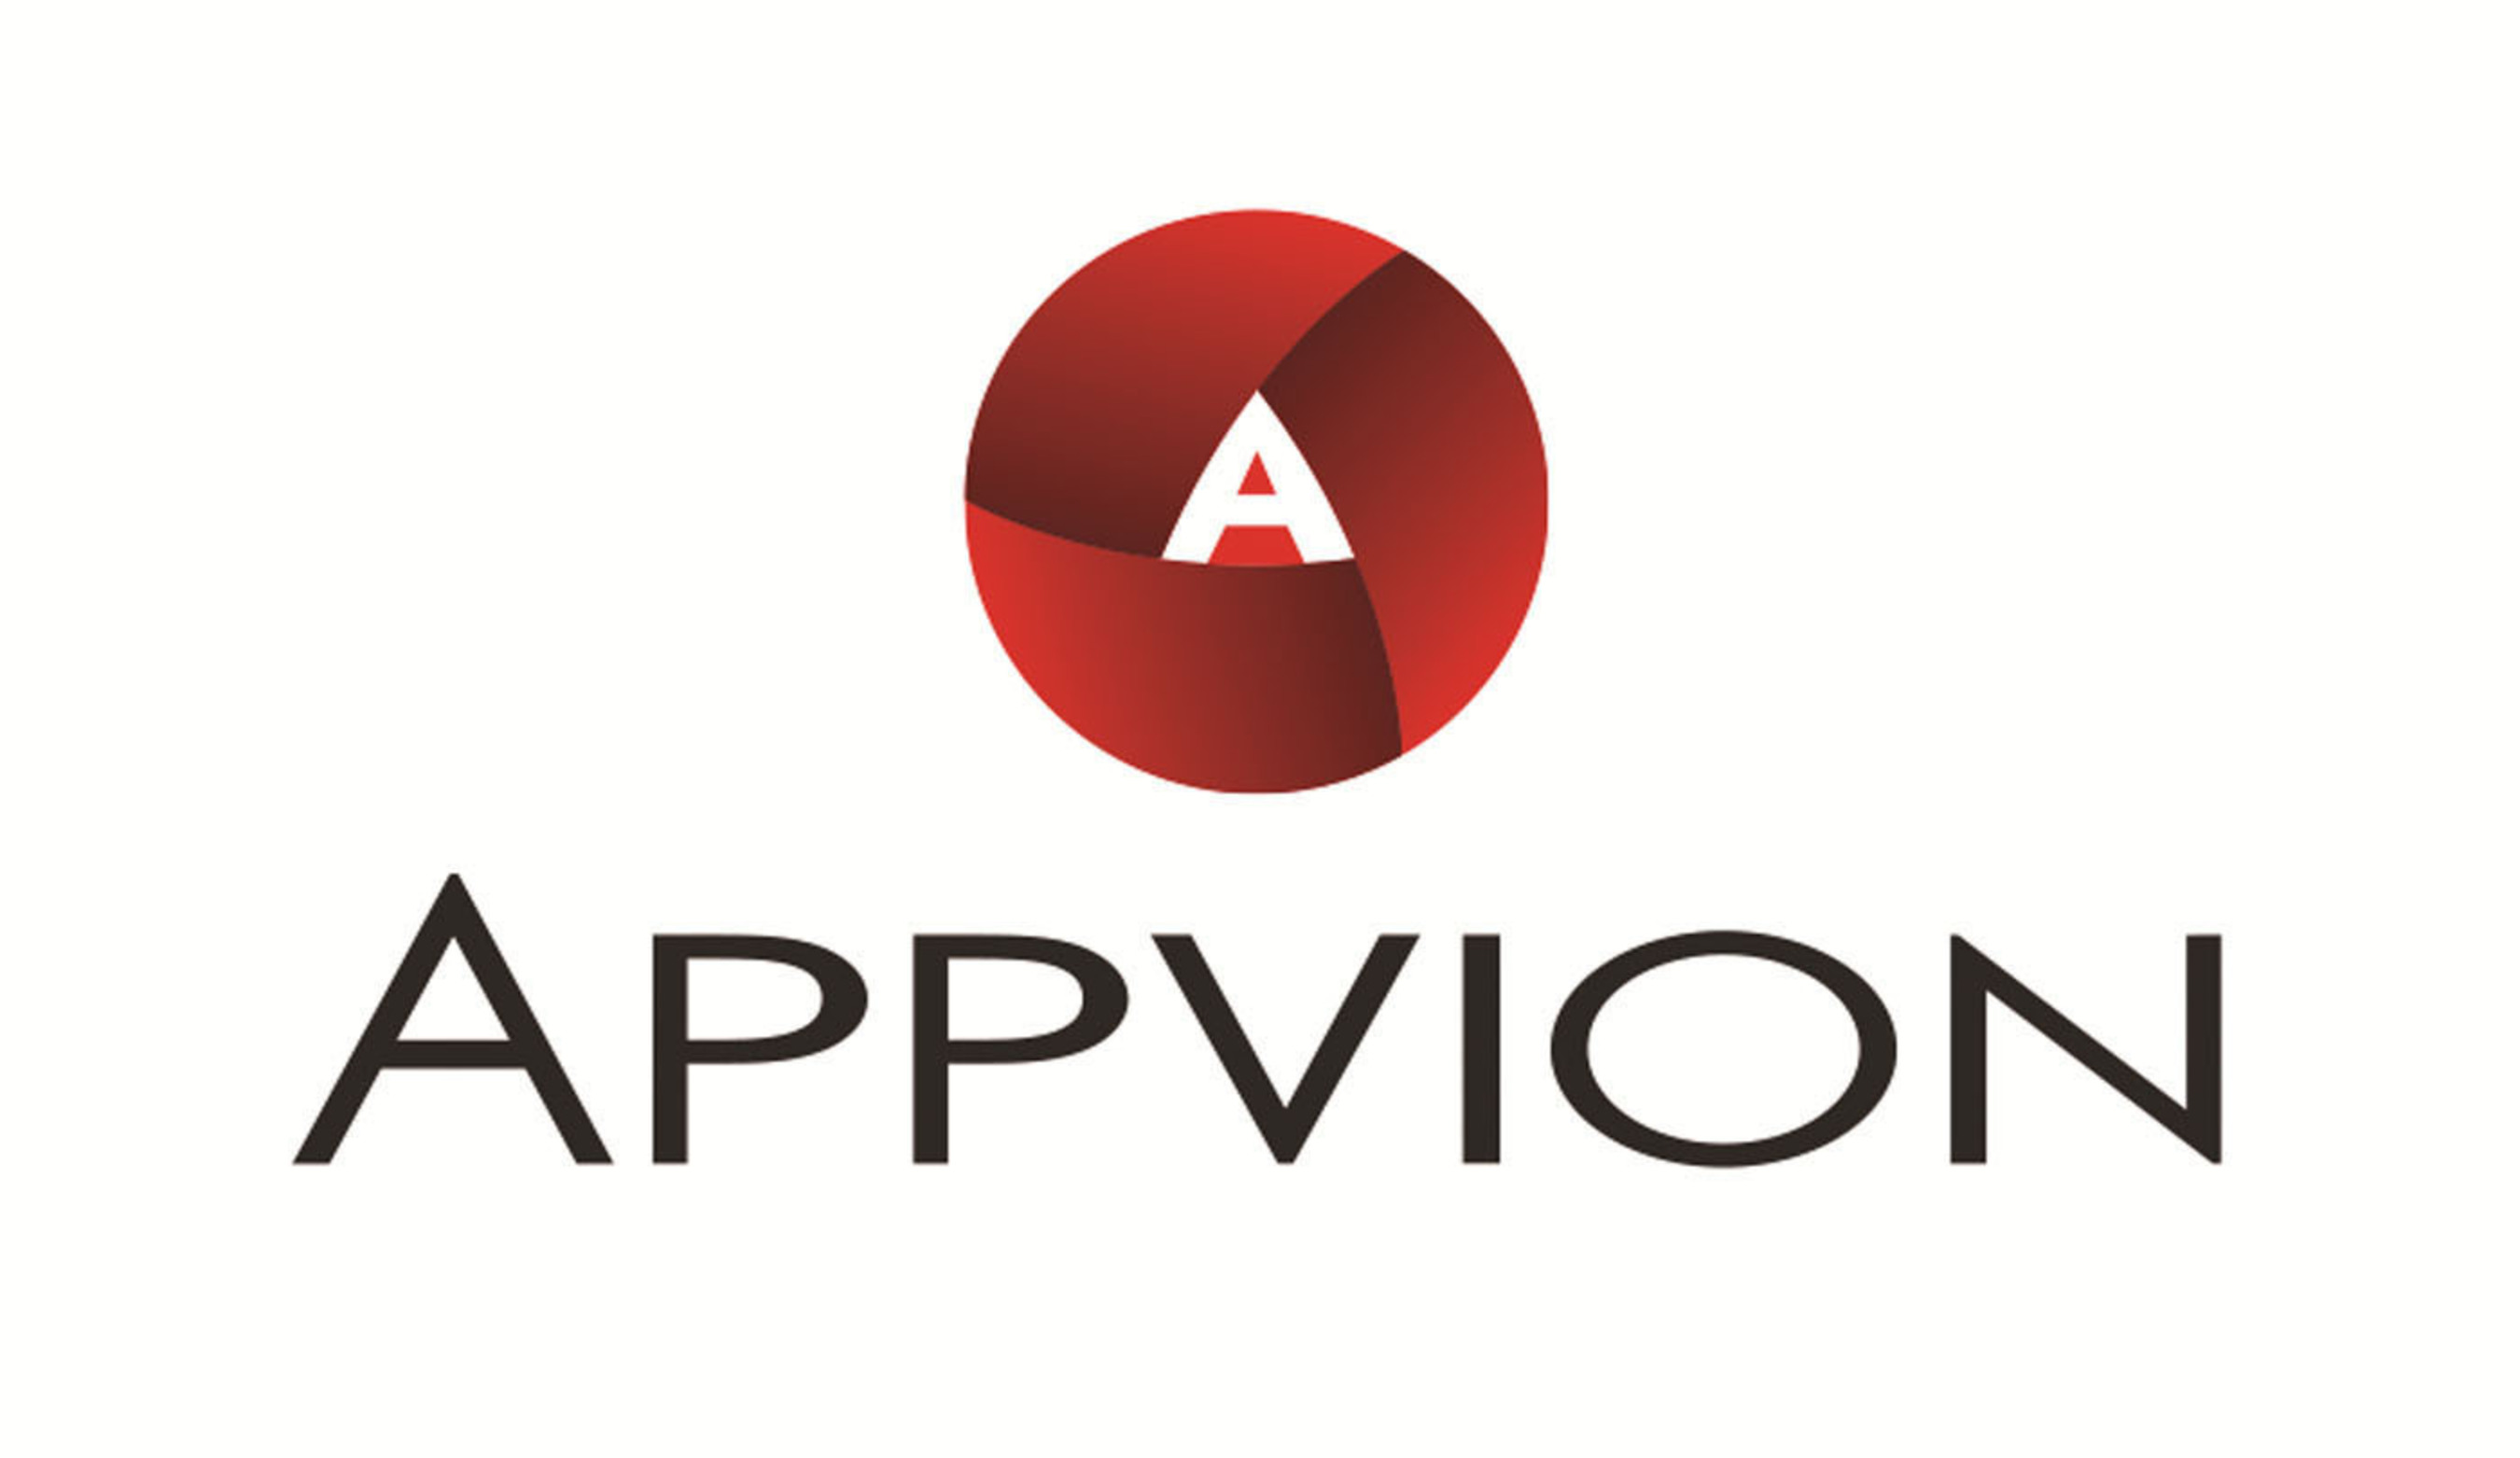 Appvion will release its fourth quarter 2014 financial results on March 9